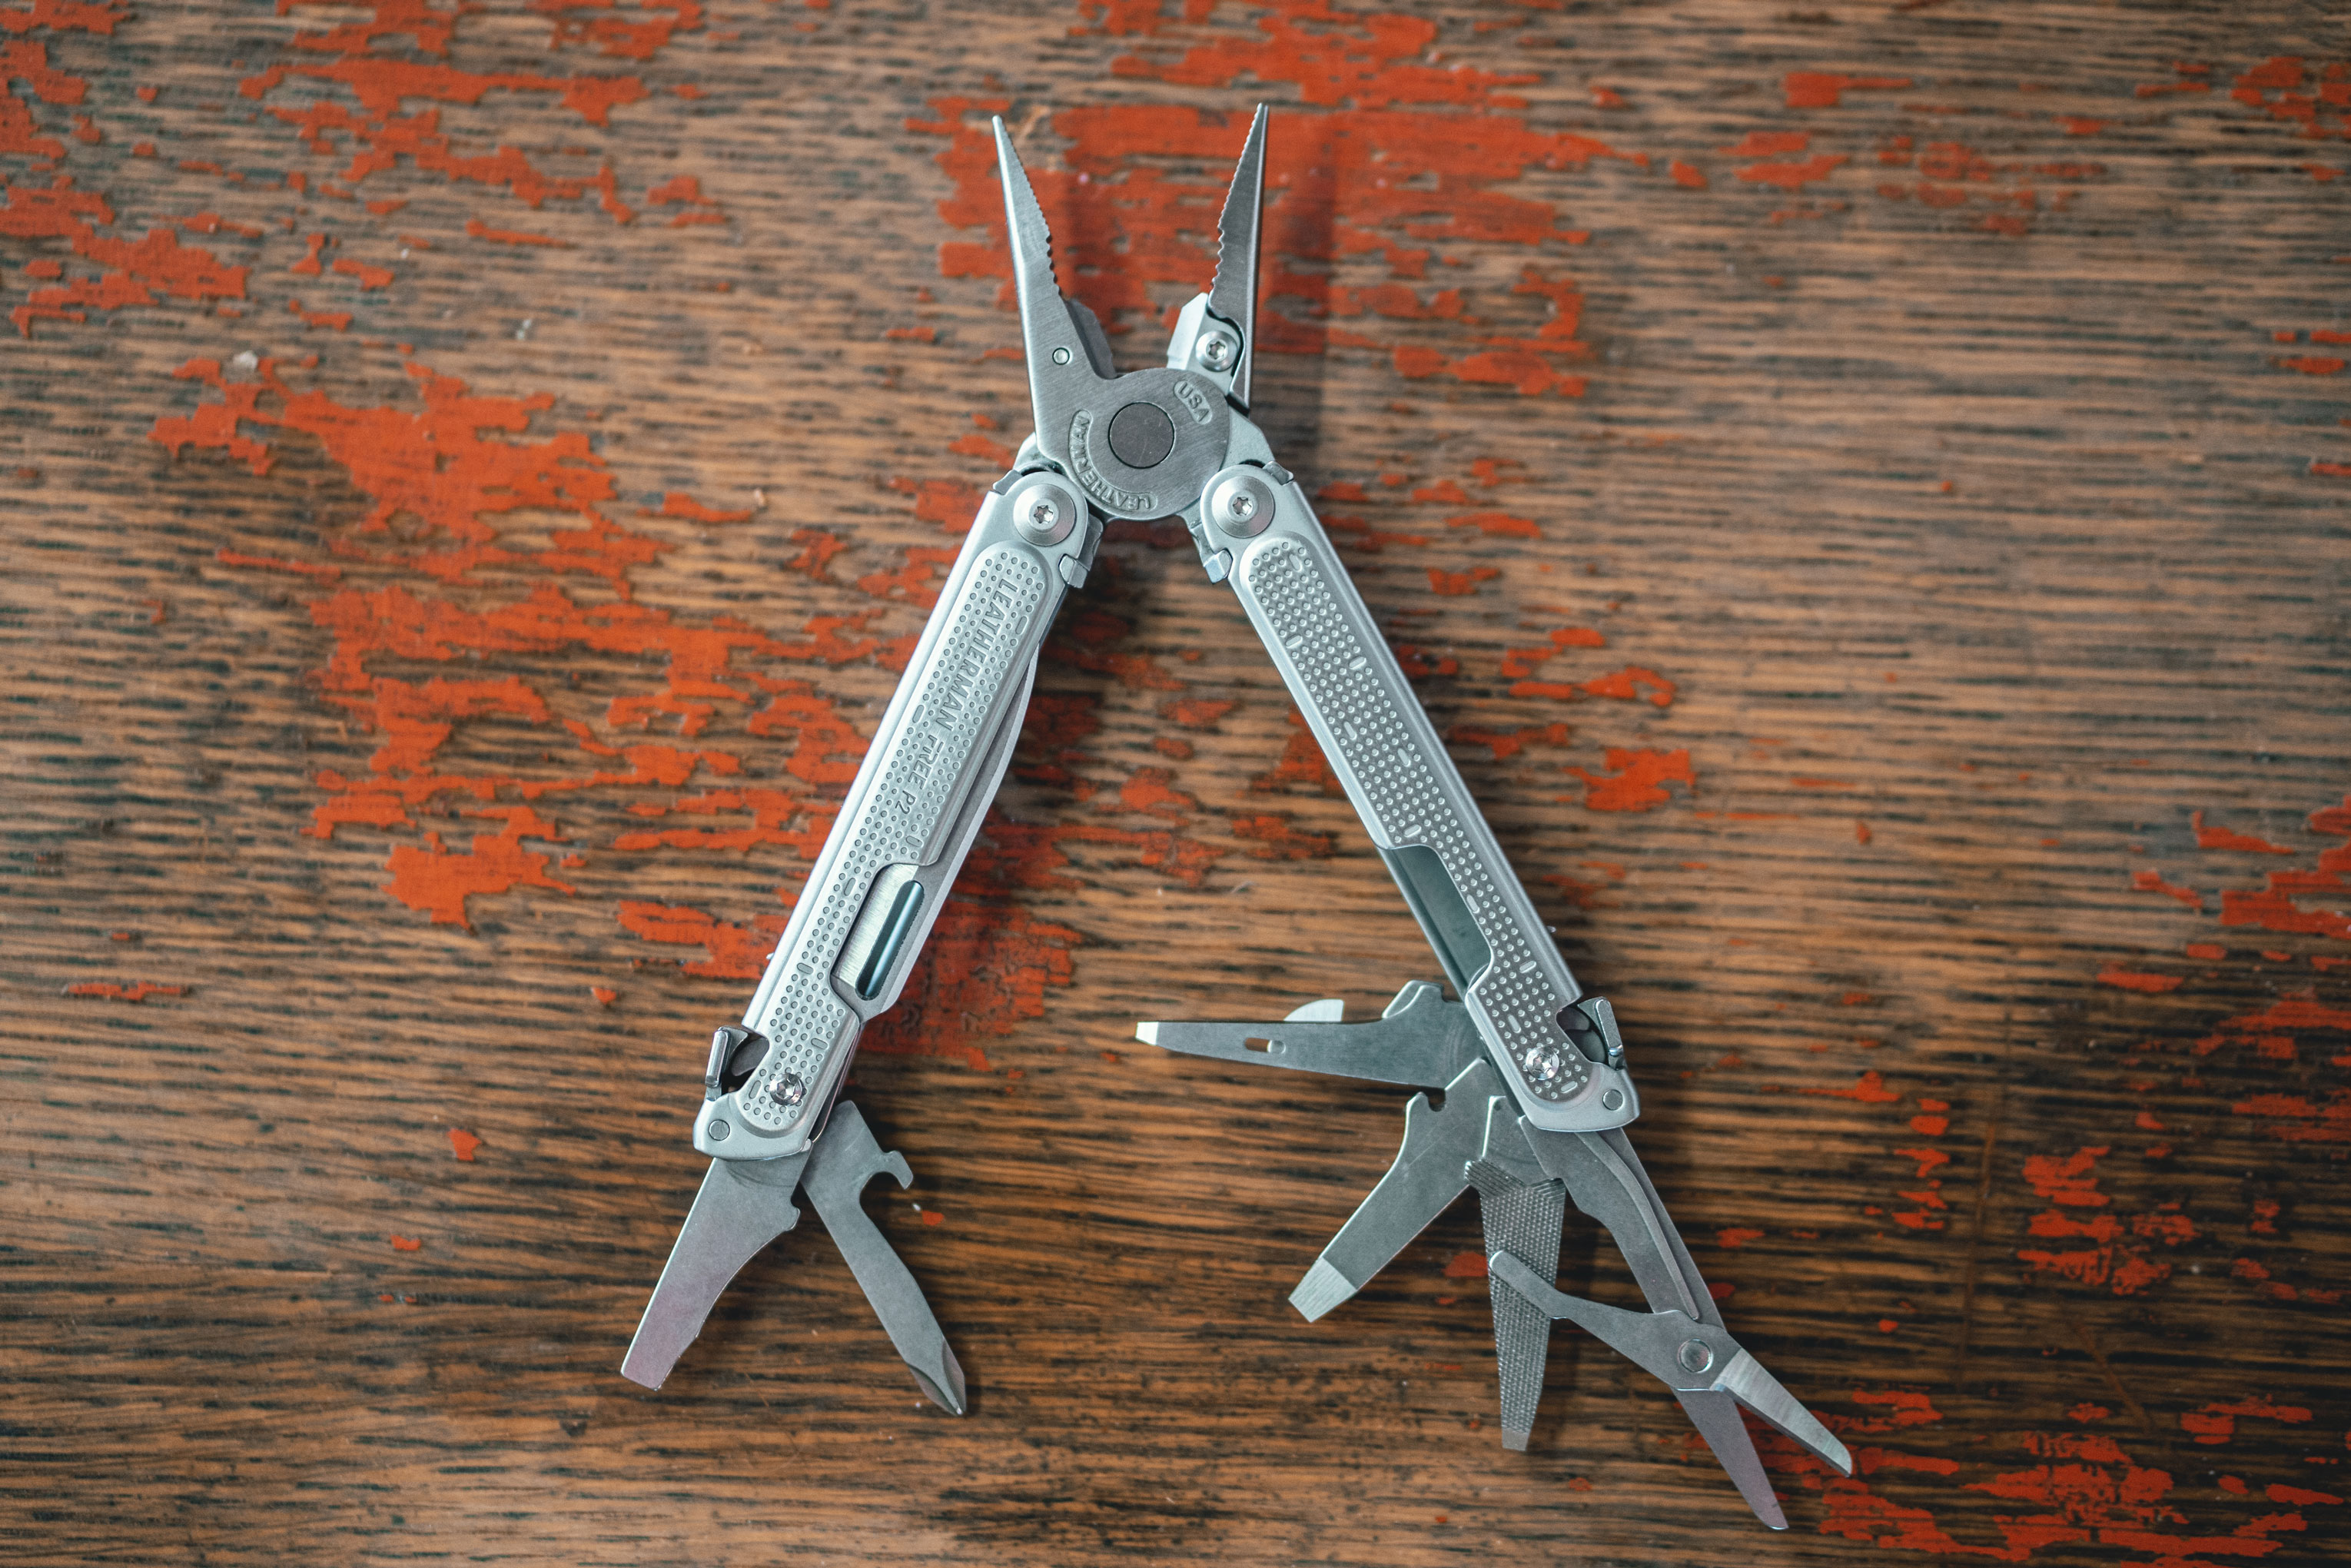 Leatherman FREE Review: The Best Multitool Ever?